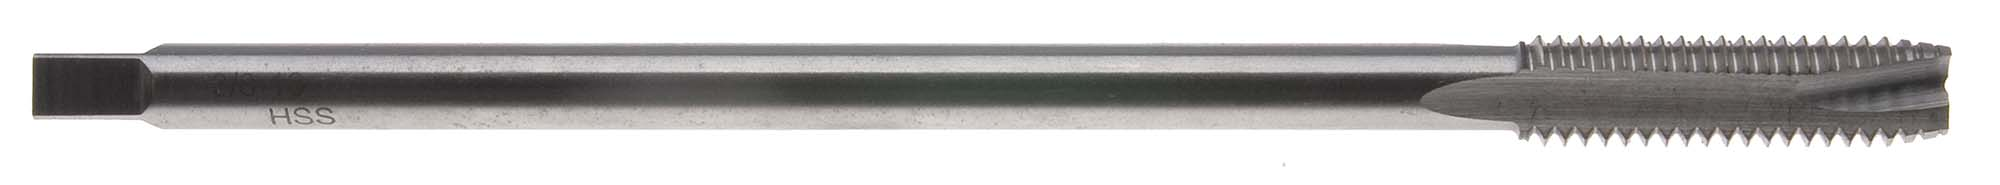 "1/4-20 x 6"" Long Spiral Point Tap with Undercut Shank, High Speed Steel"